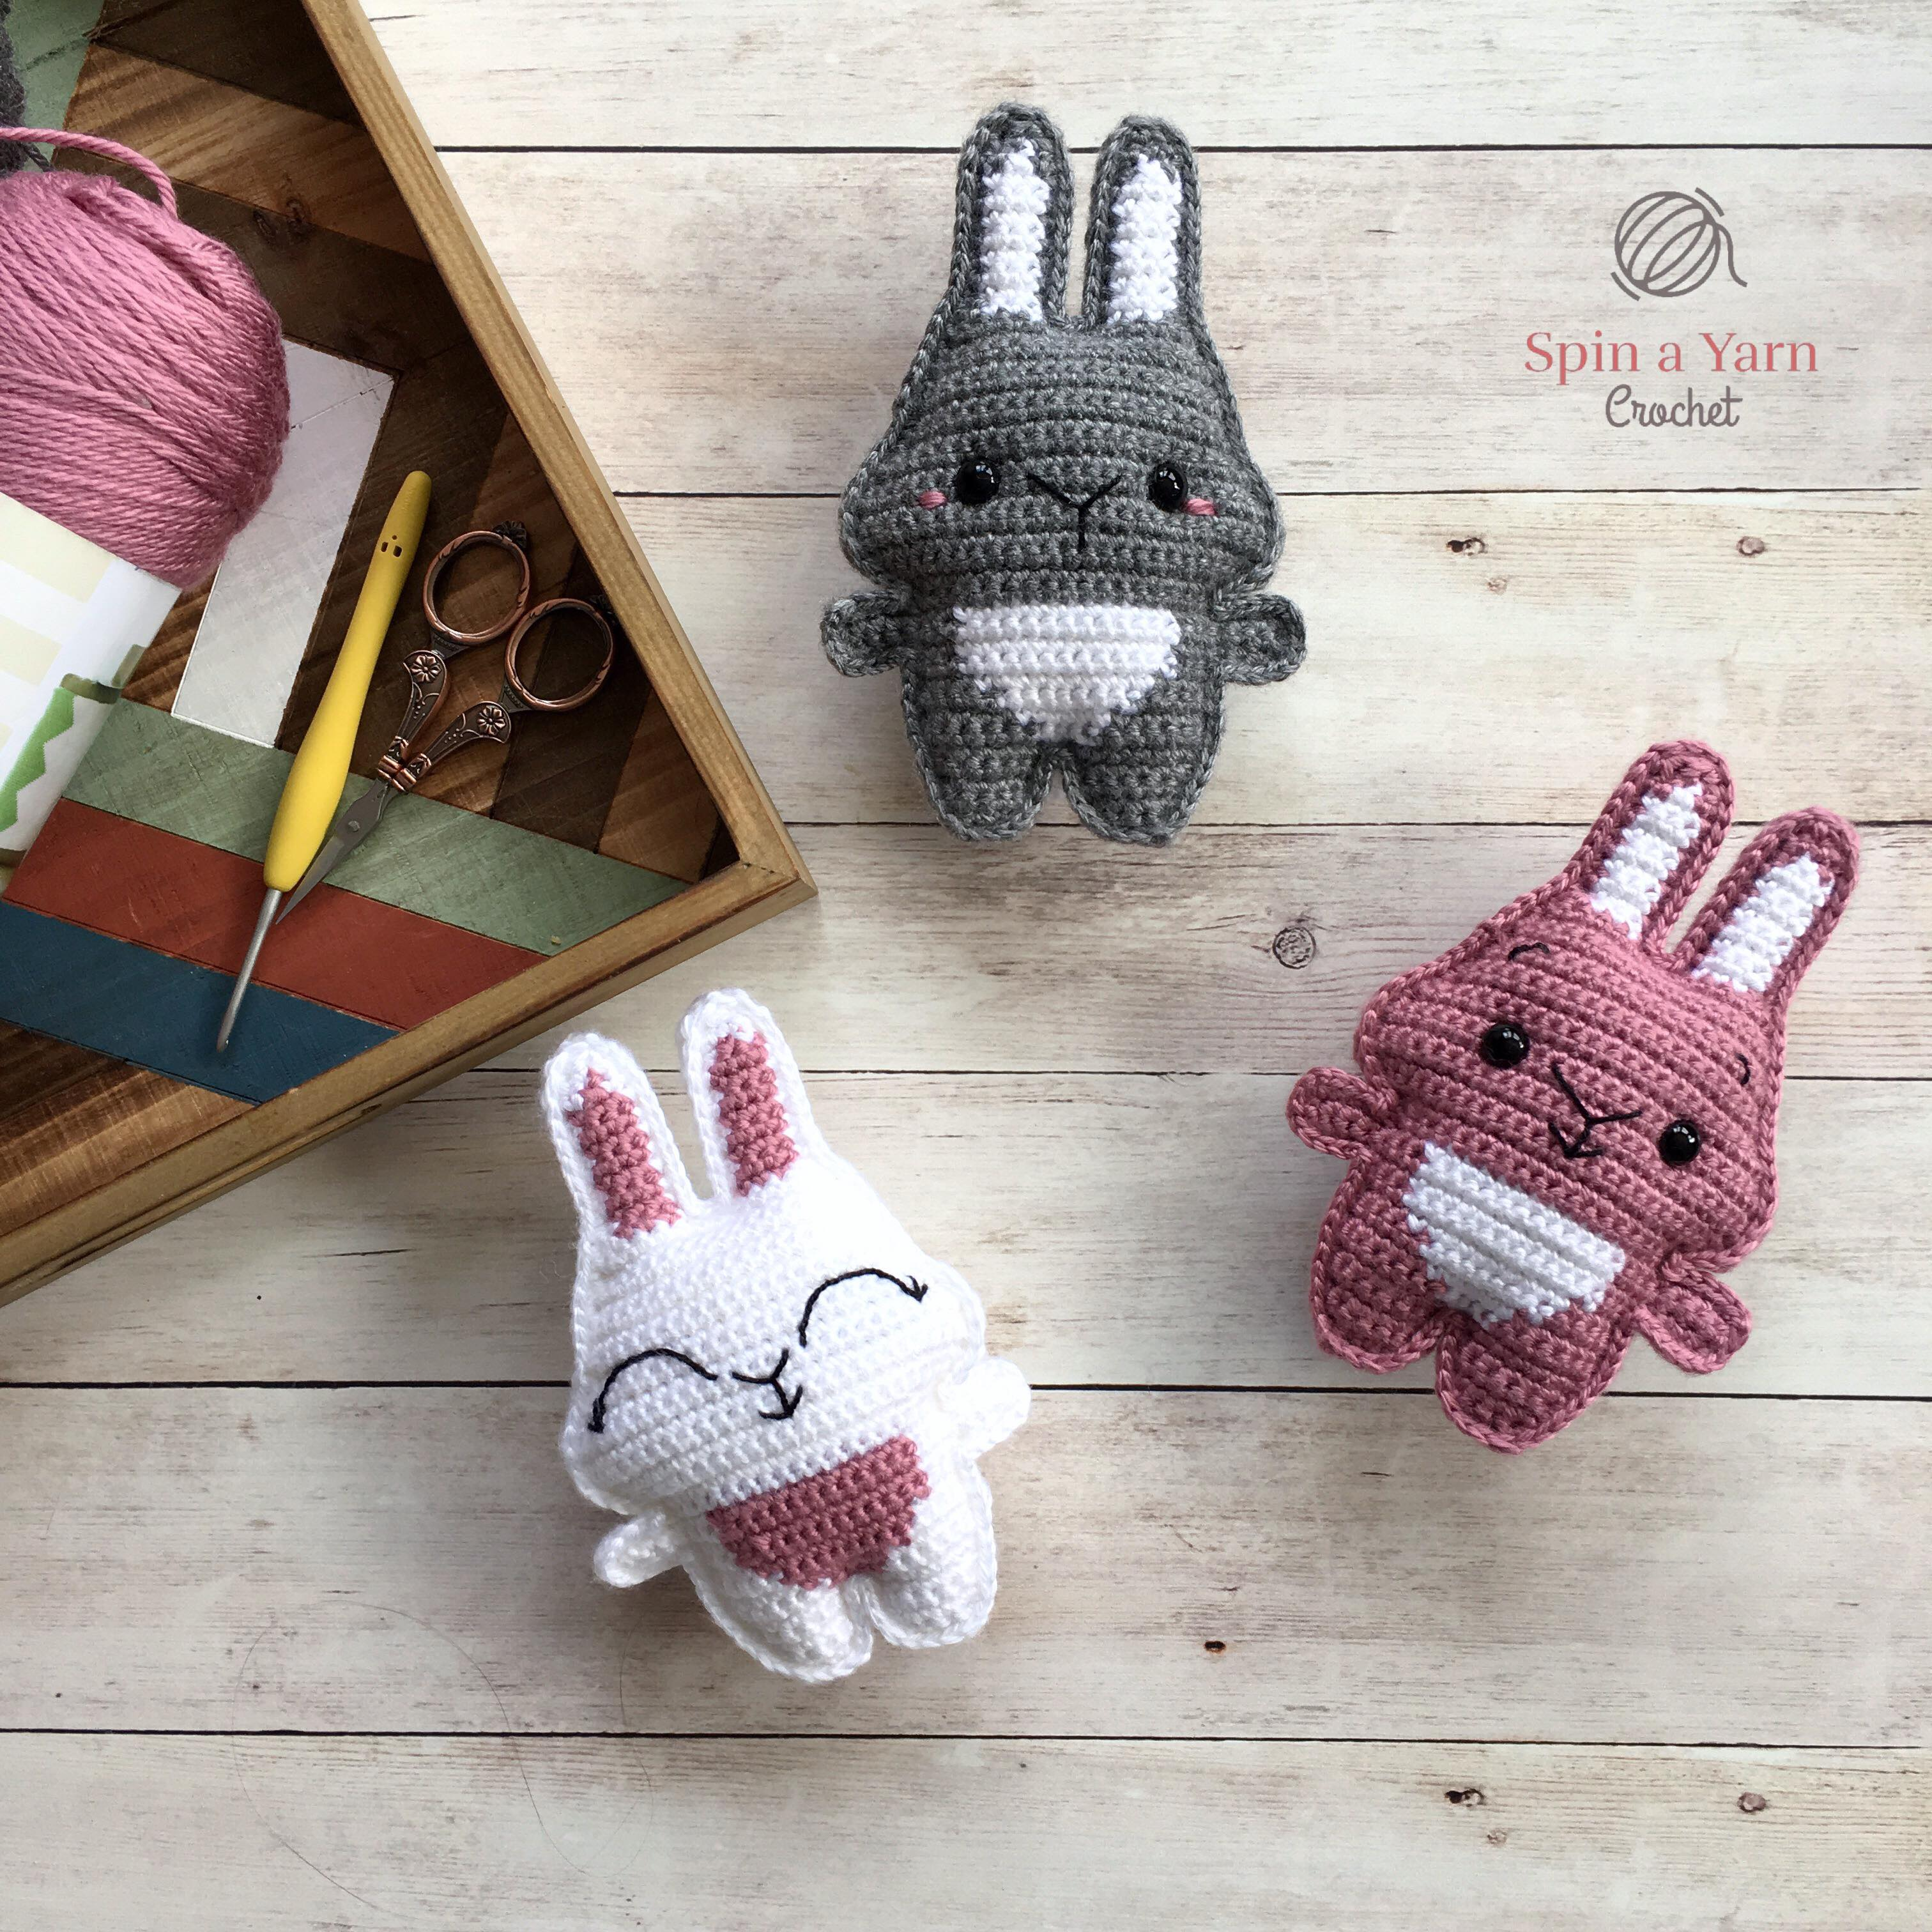 Free Amigurumi Bunny Crochet Patterns | Crochet patterns amigurumi ... | 3024x3024